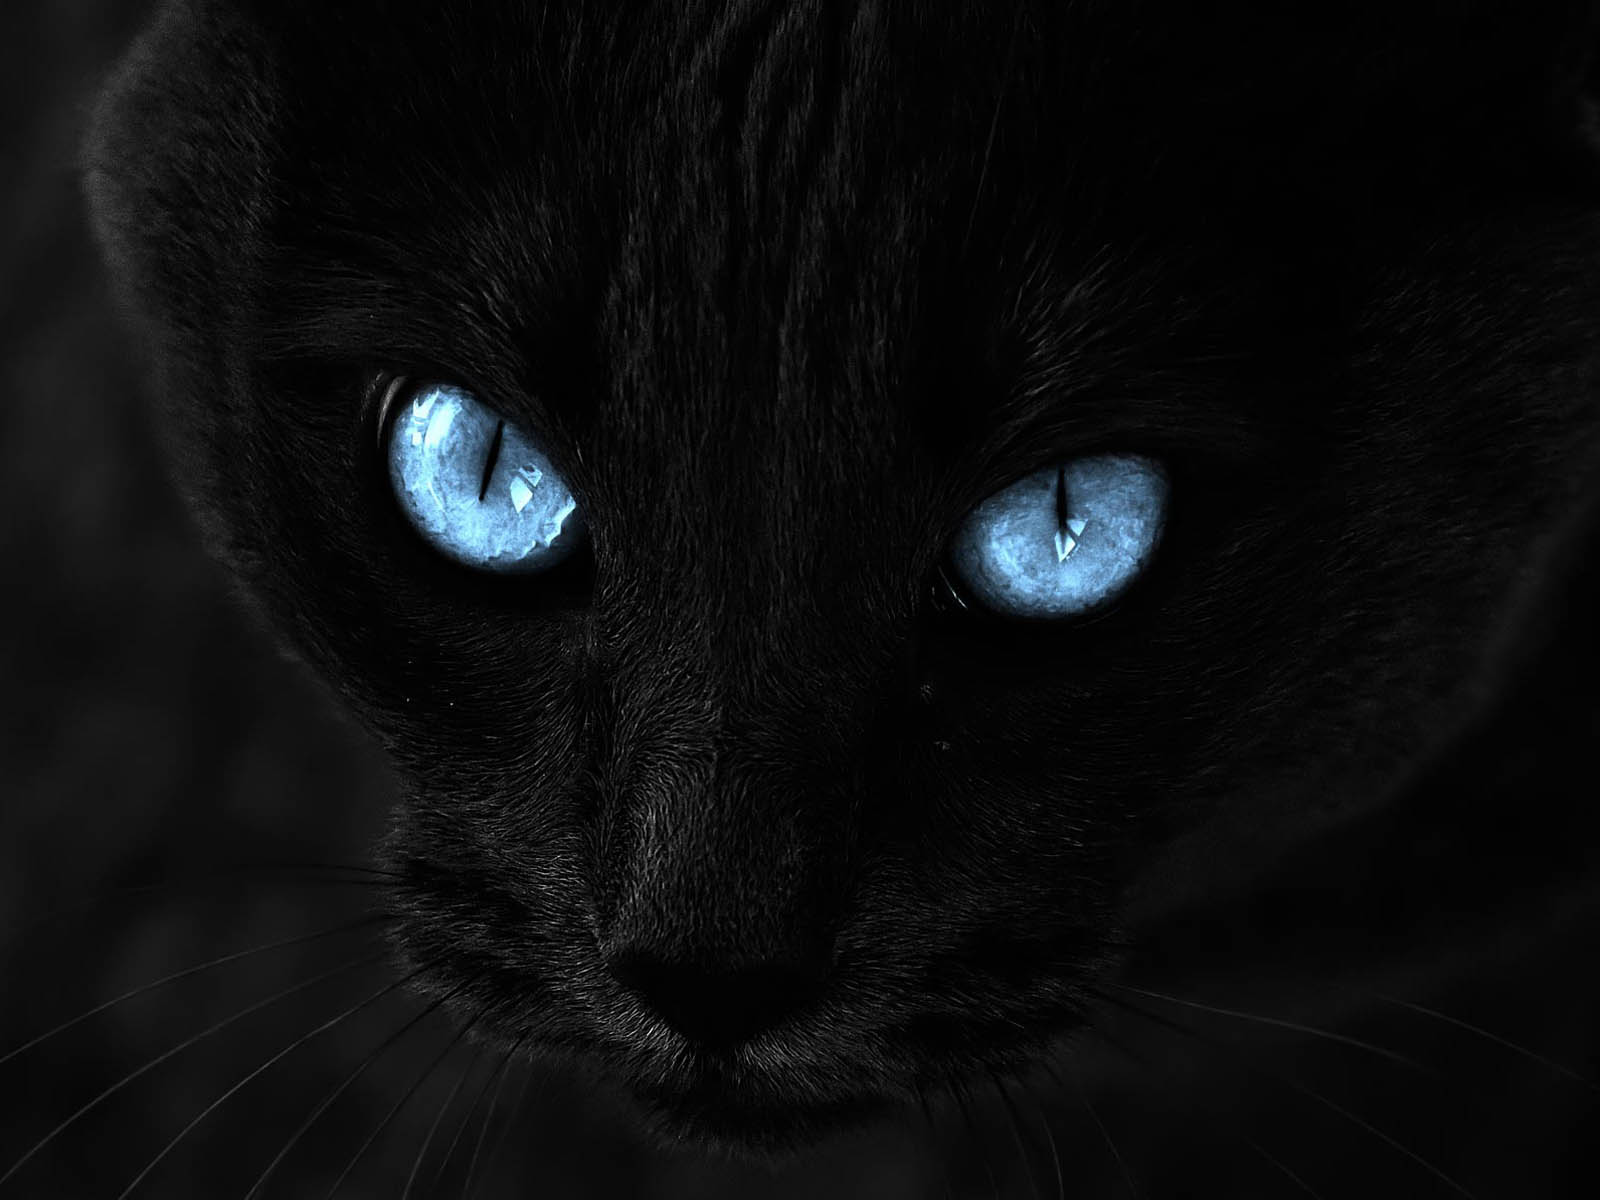 Black Cat Eyes Wallpaper: Wallpaper: Black Cat Blue Eyes